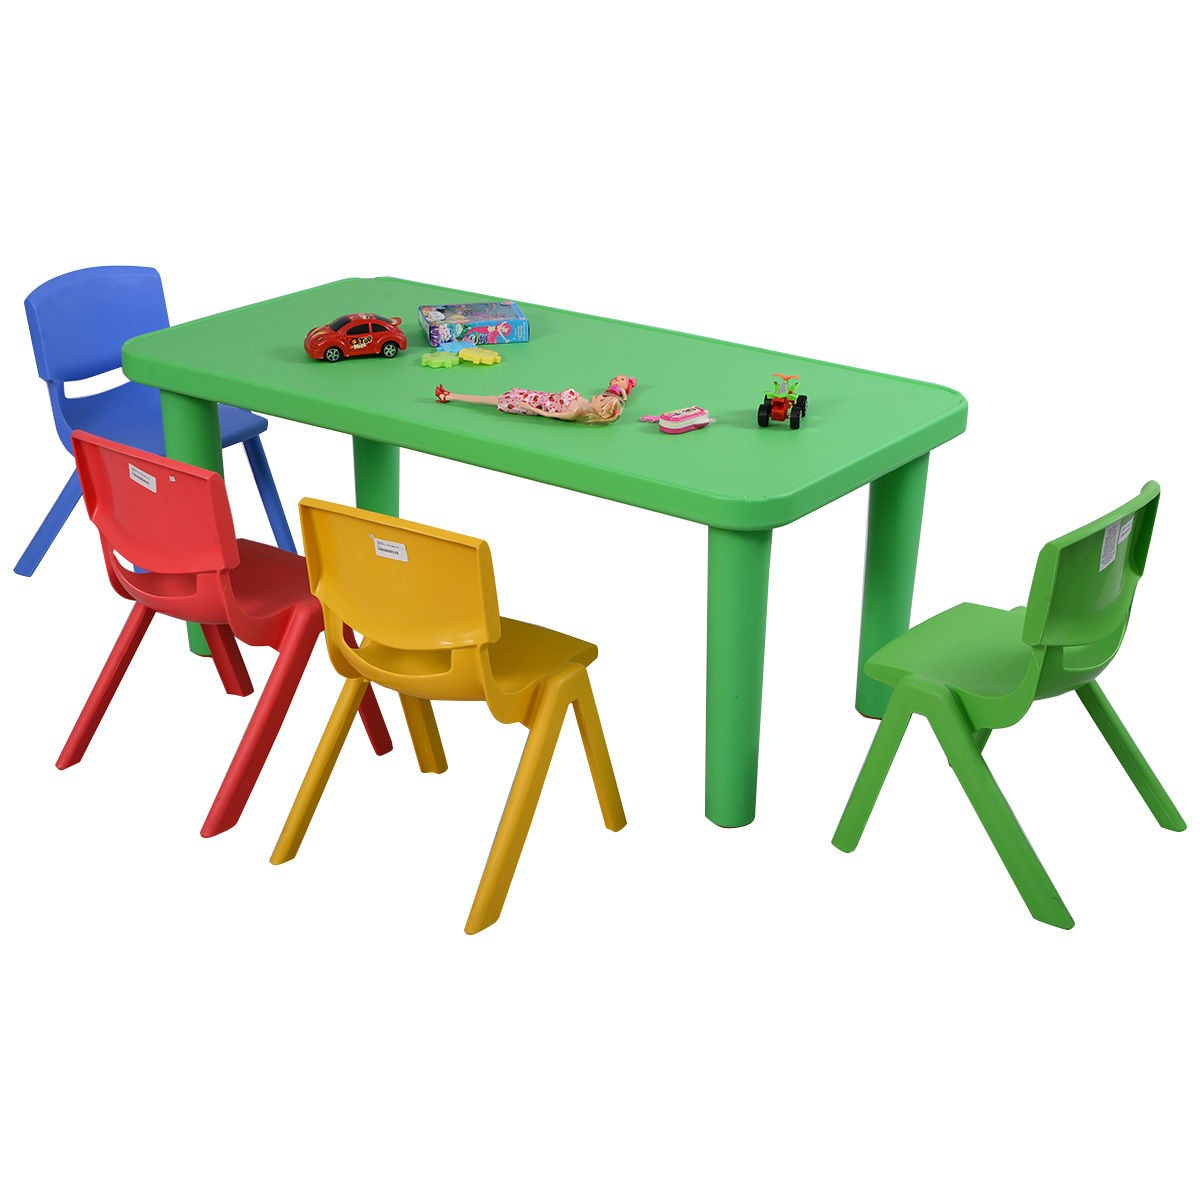 plastic kids table and chairs teenage desk fun 4 set colorful play